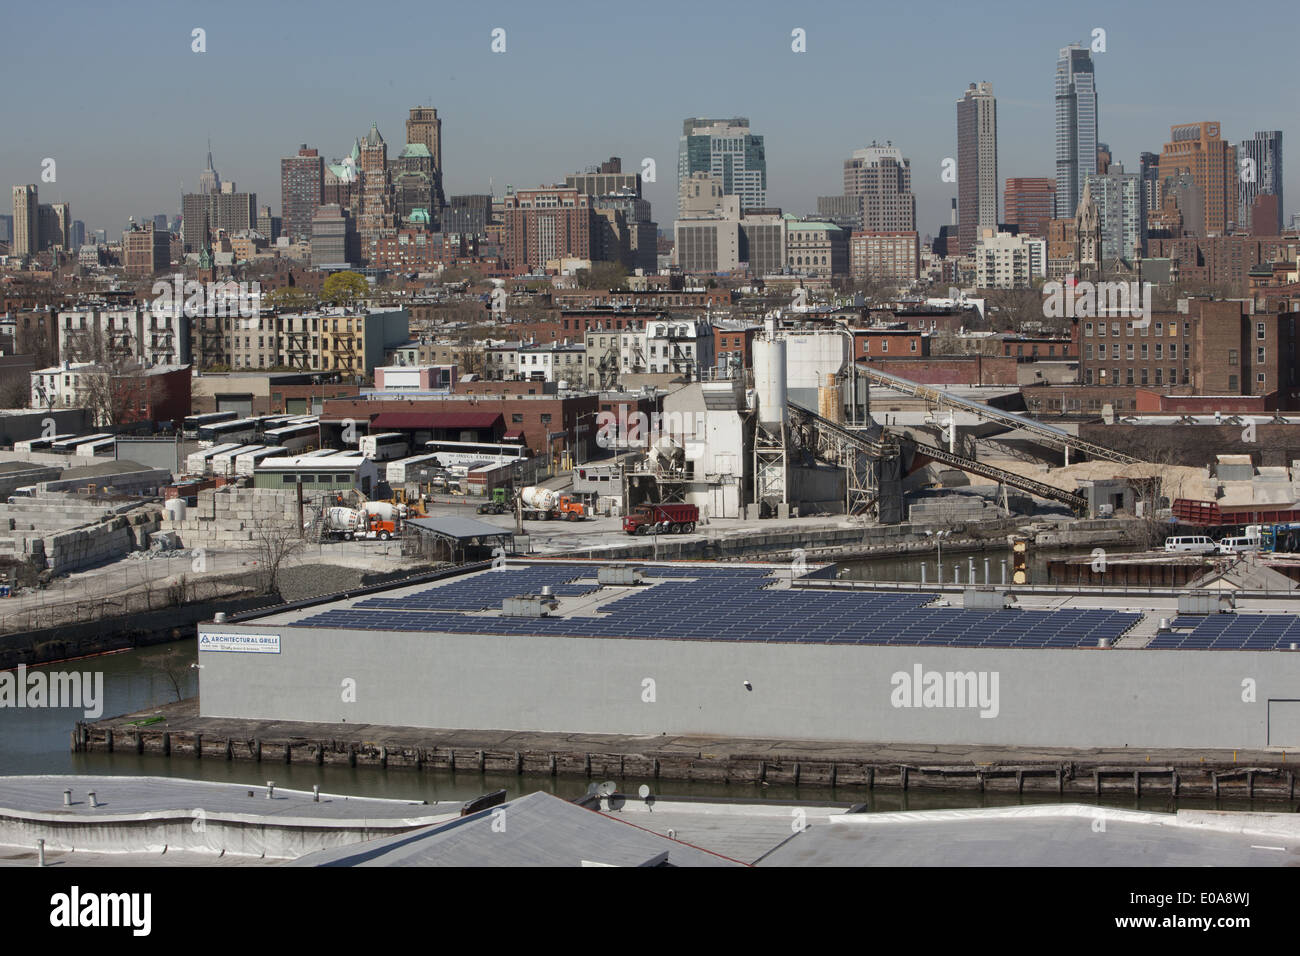 Factory building in the Gowanus Canal area with solar panels on roof with downtown Brooklyn in the background. - Stock Image